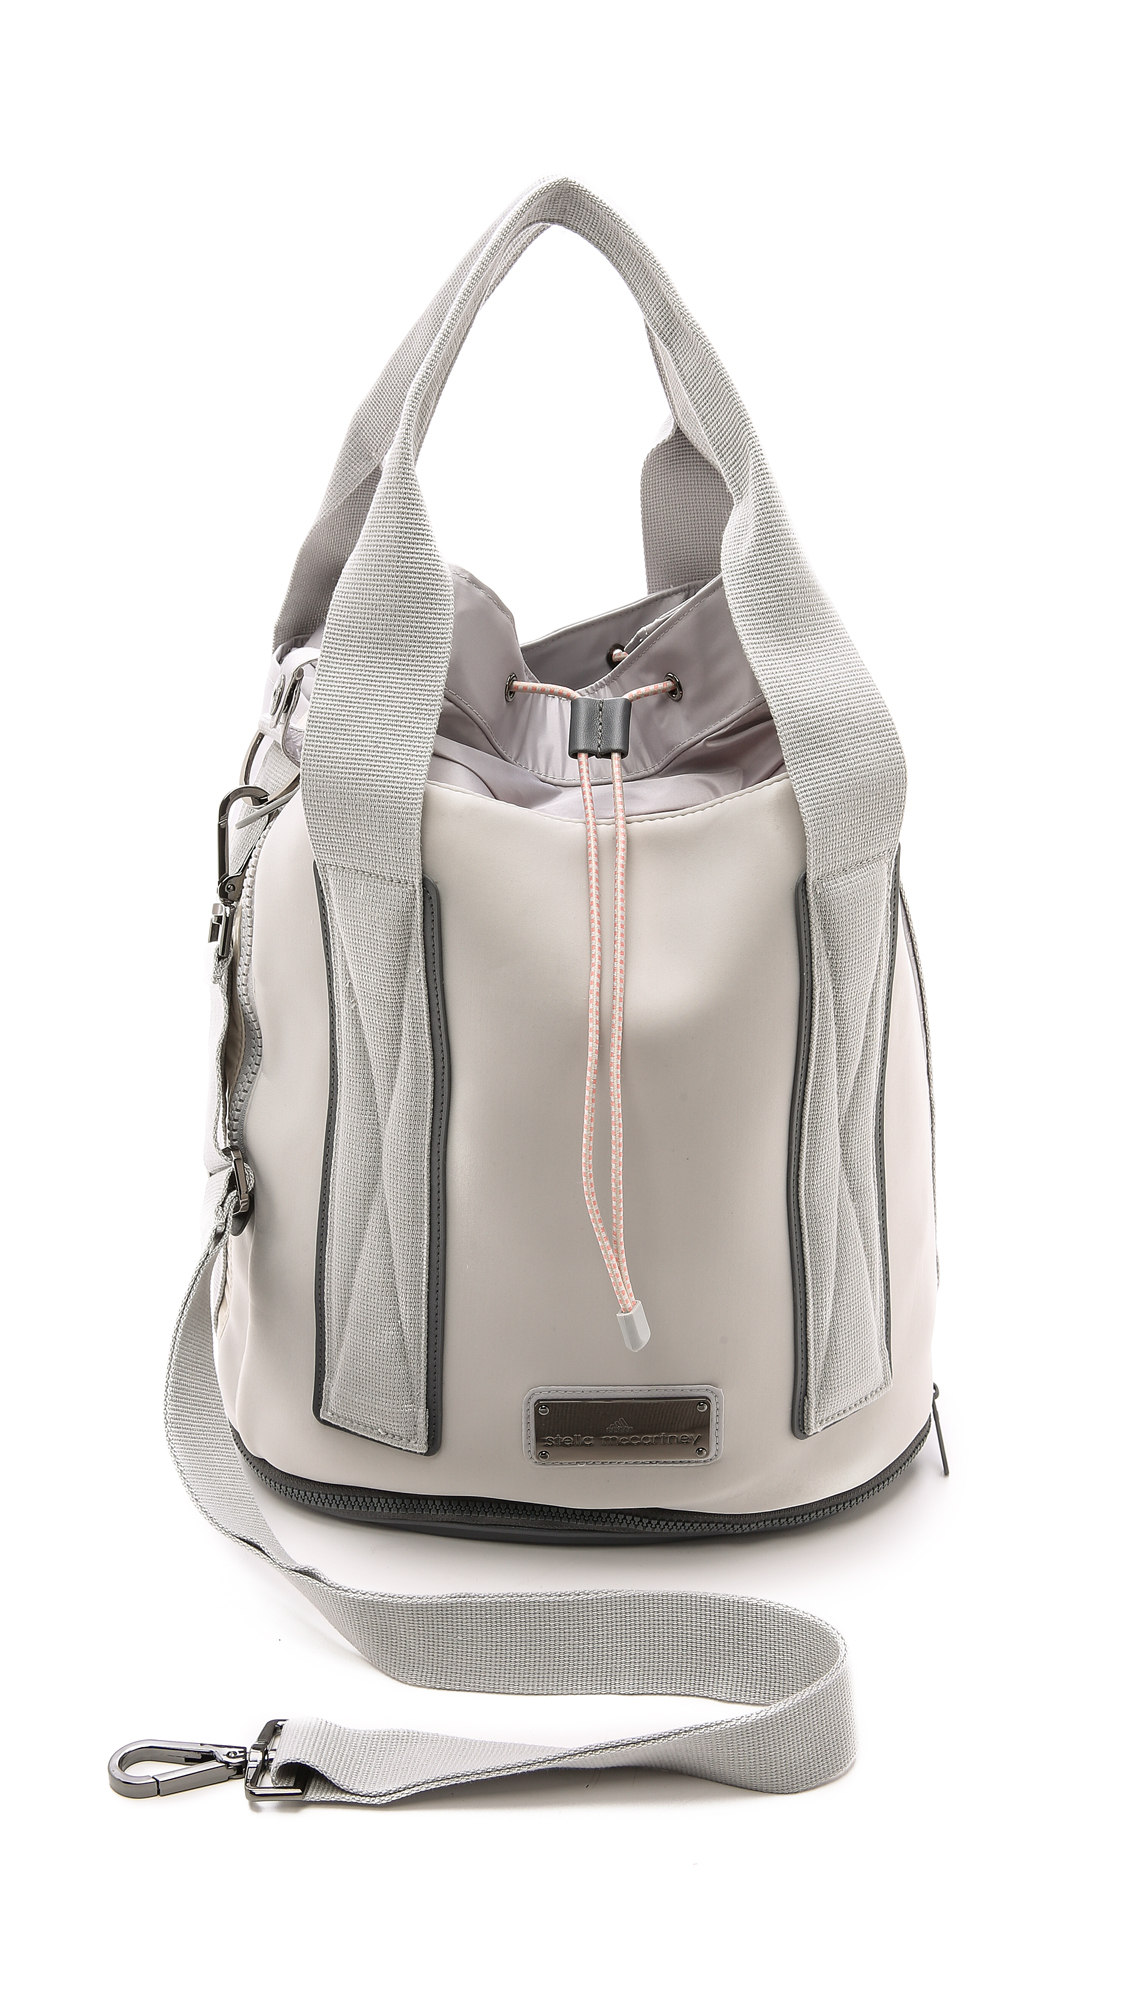 926cb69875 Adidas By Stella Mccartney Tennis Bag - Glacial in Gray - Lyst